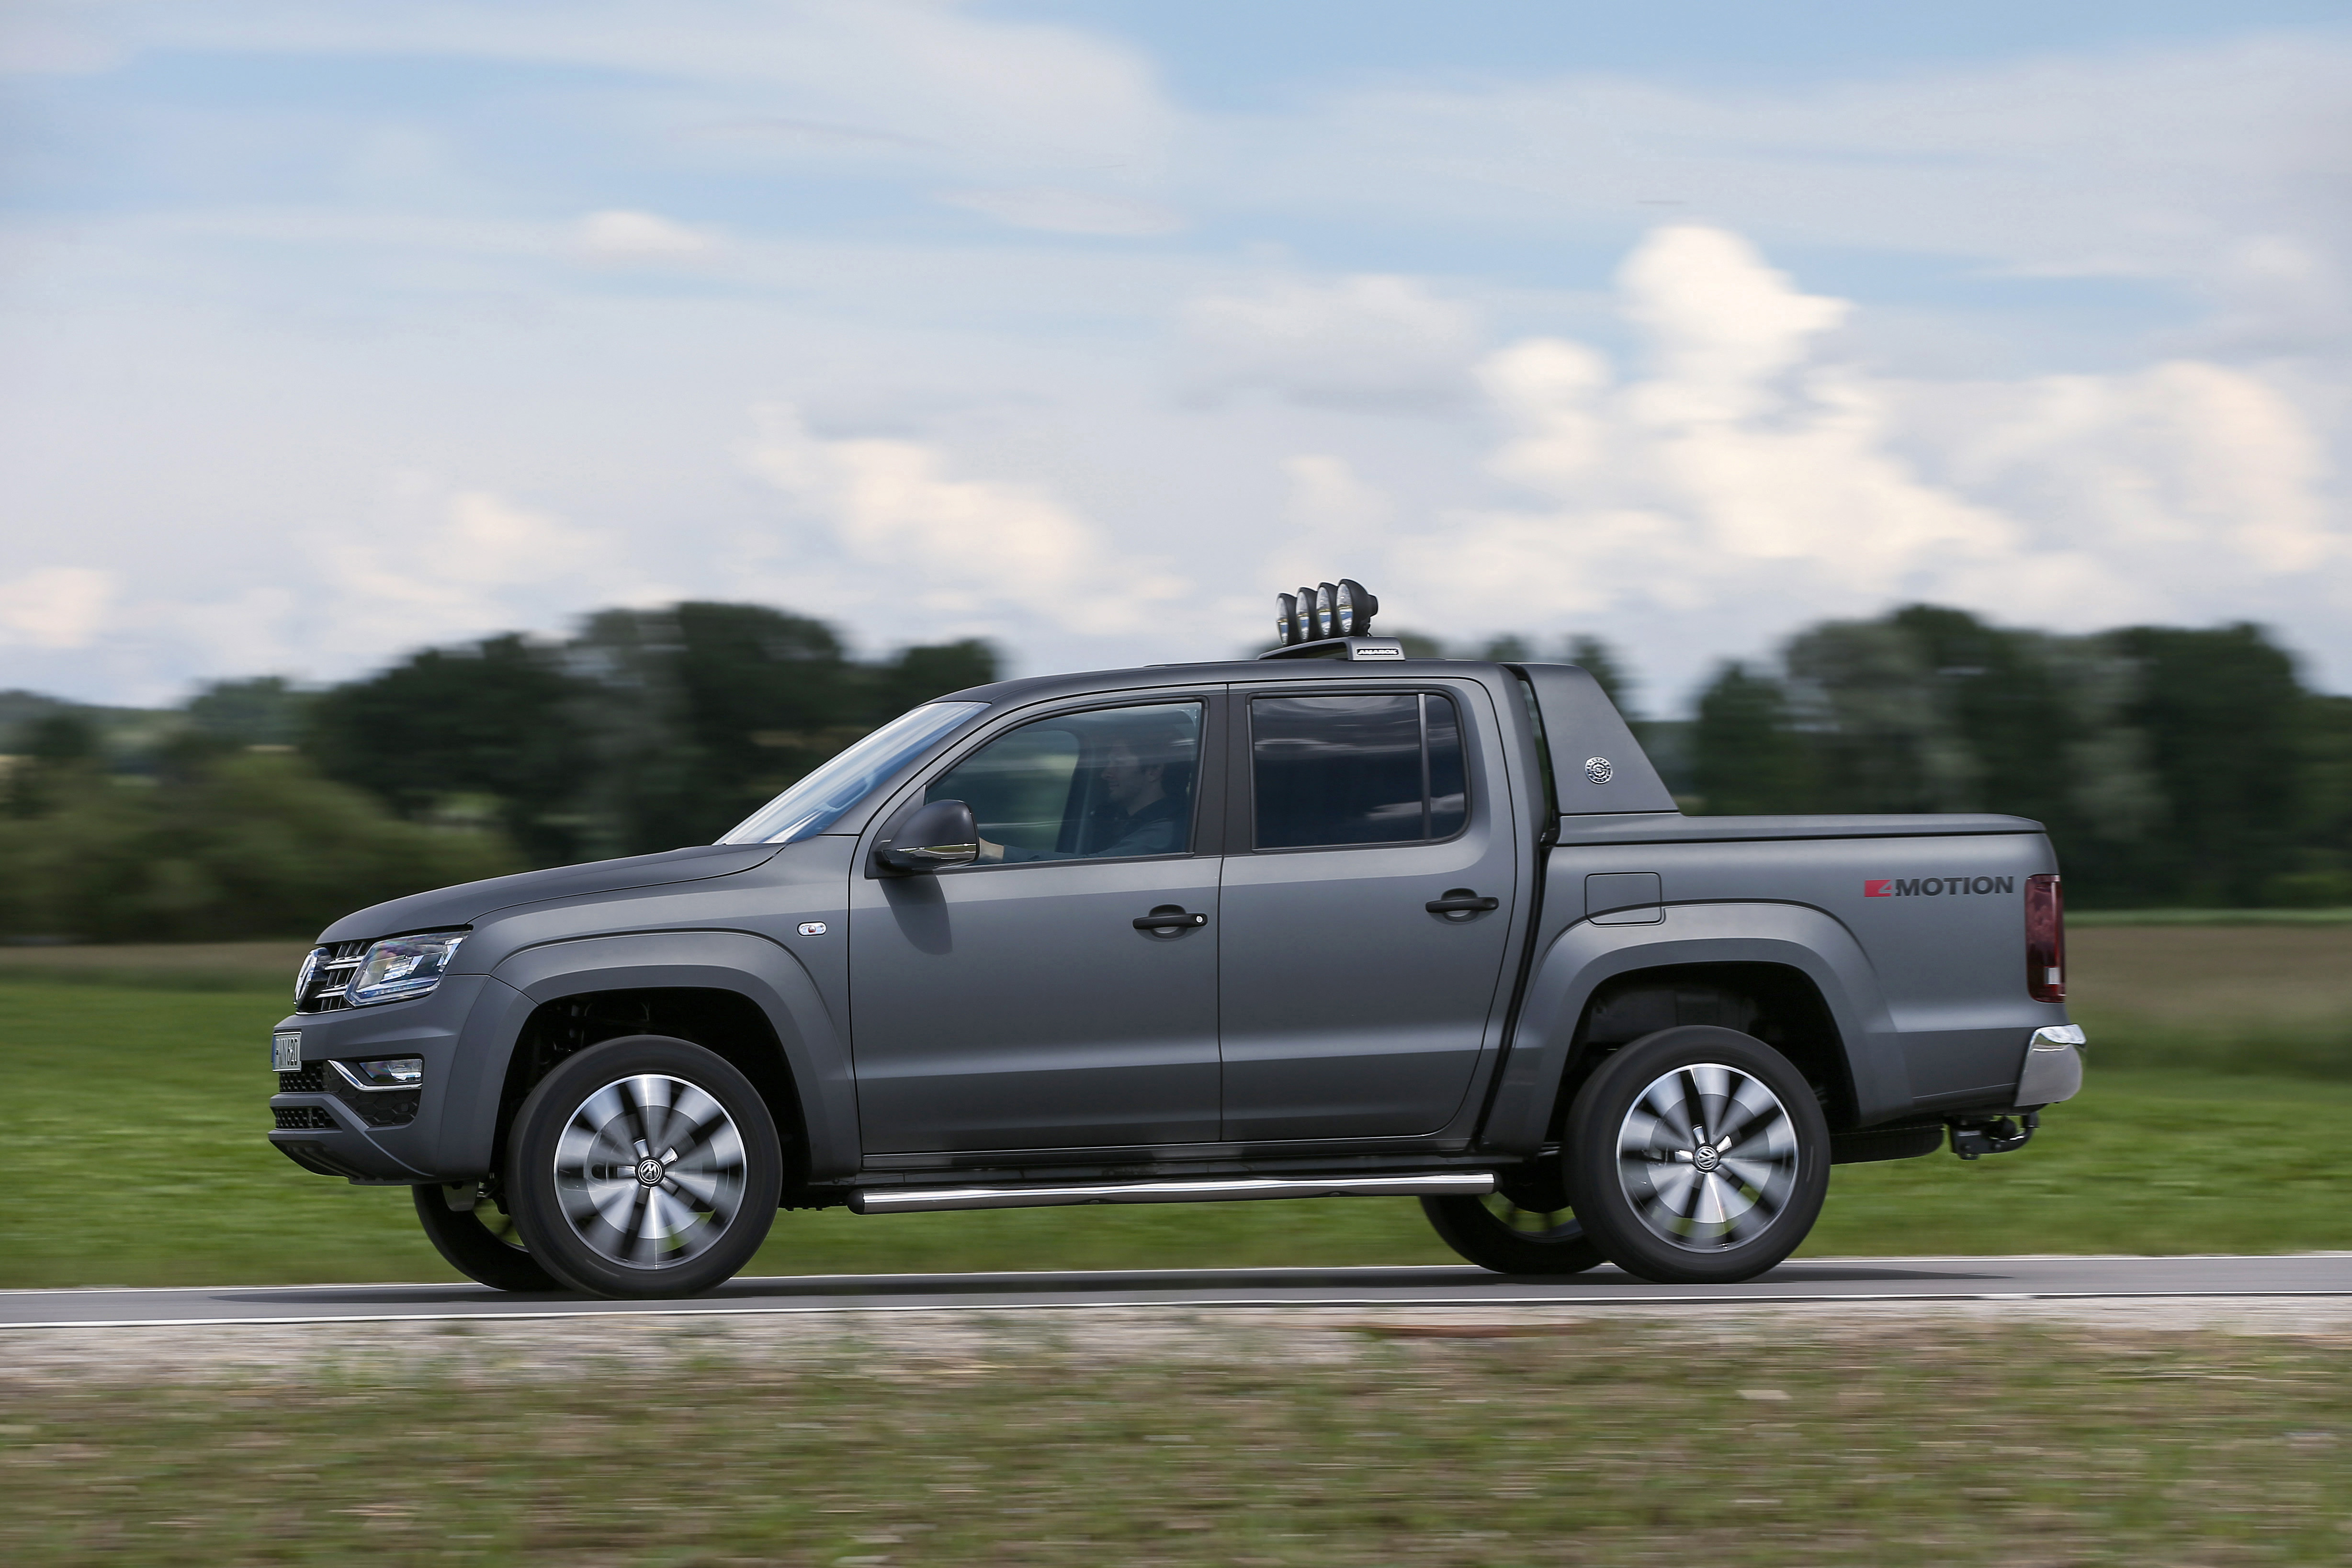 Volkswagen Amarok DoubleCab modern specifications